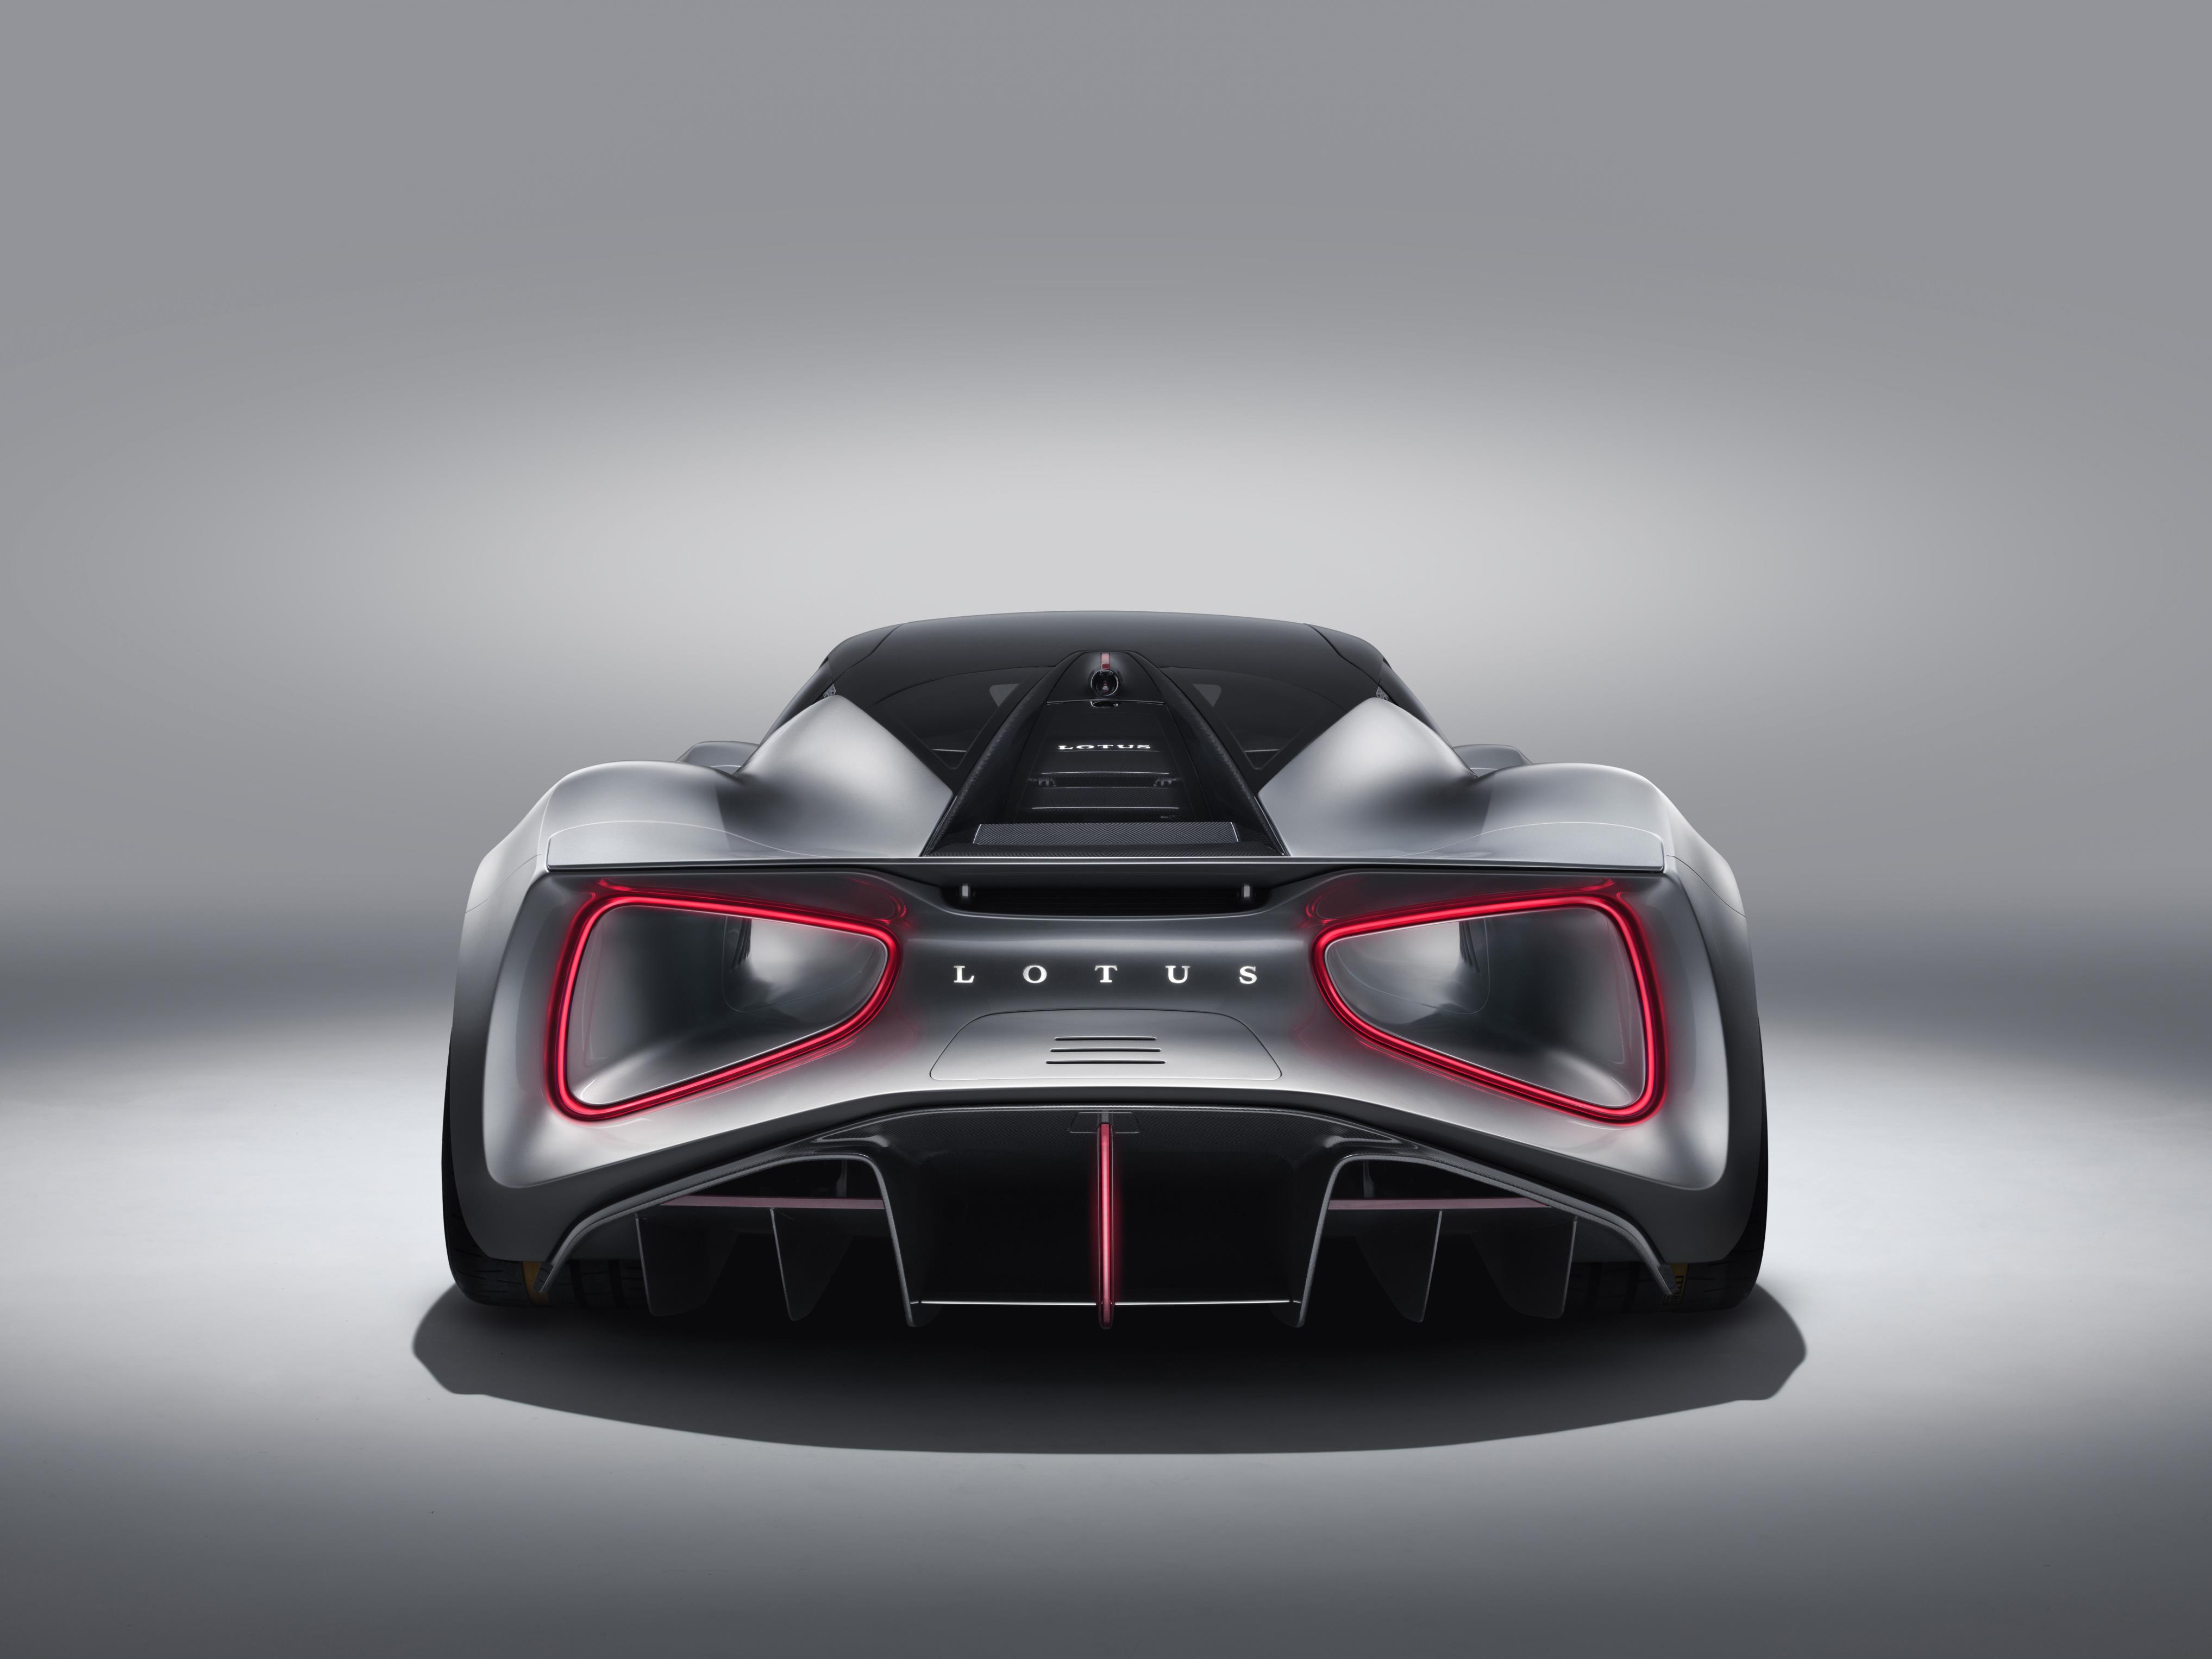 1765347_Lotus Evija Rear